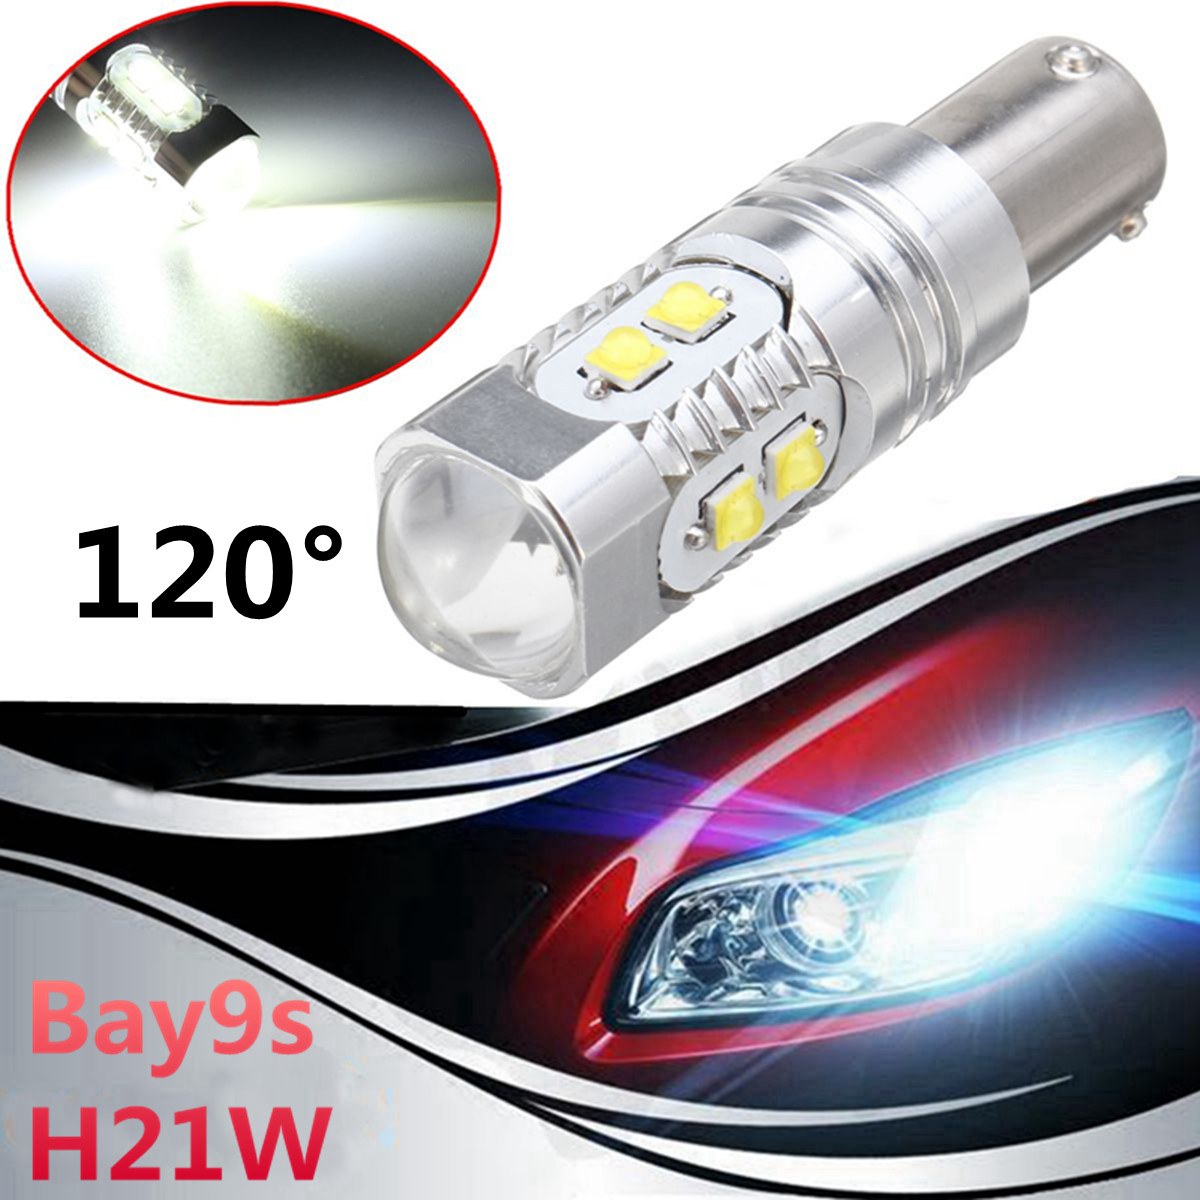 1Pc <font><b>Bay9s</b></font> Turn Signal Lamp Bulbs <font><b>H21W</b></font> 64136 High Power 50W <font><b>LED</b></font> Projector White Car Fog Light Bulb image